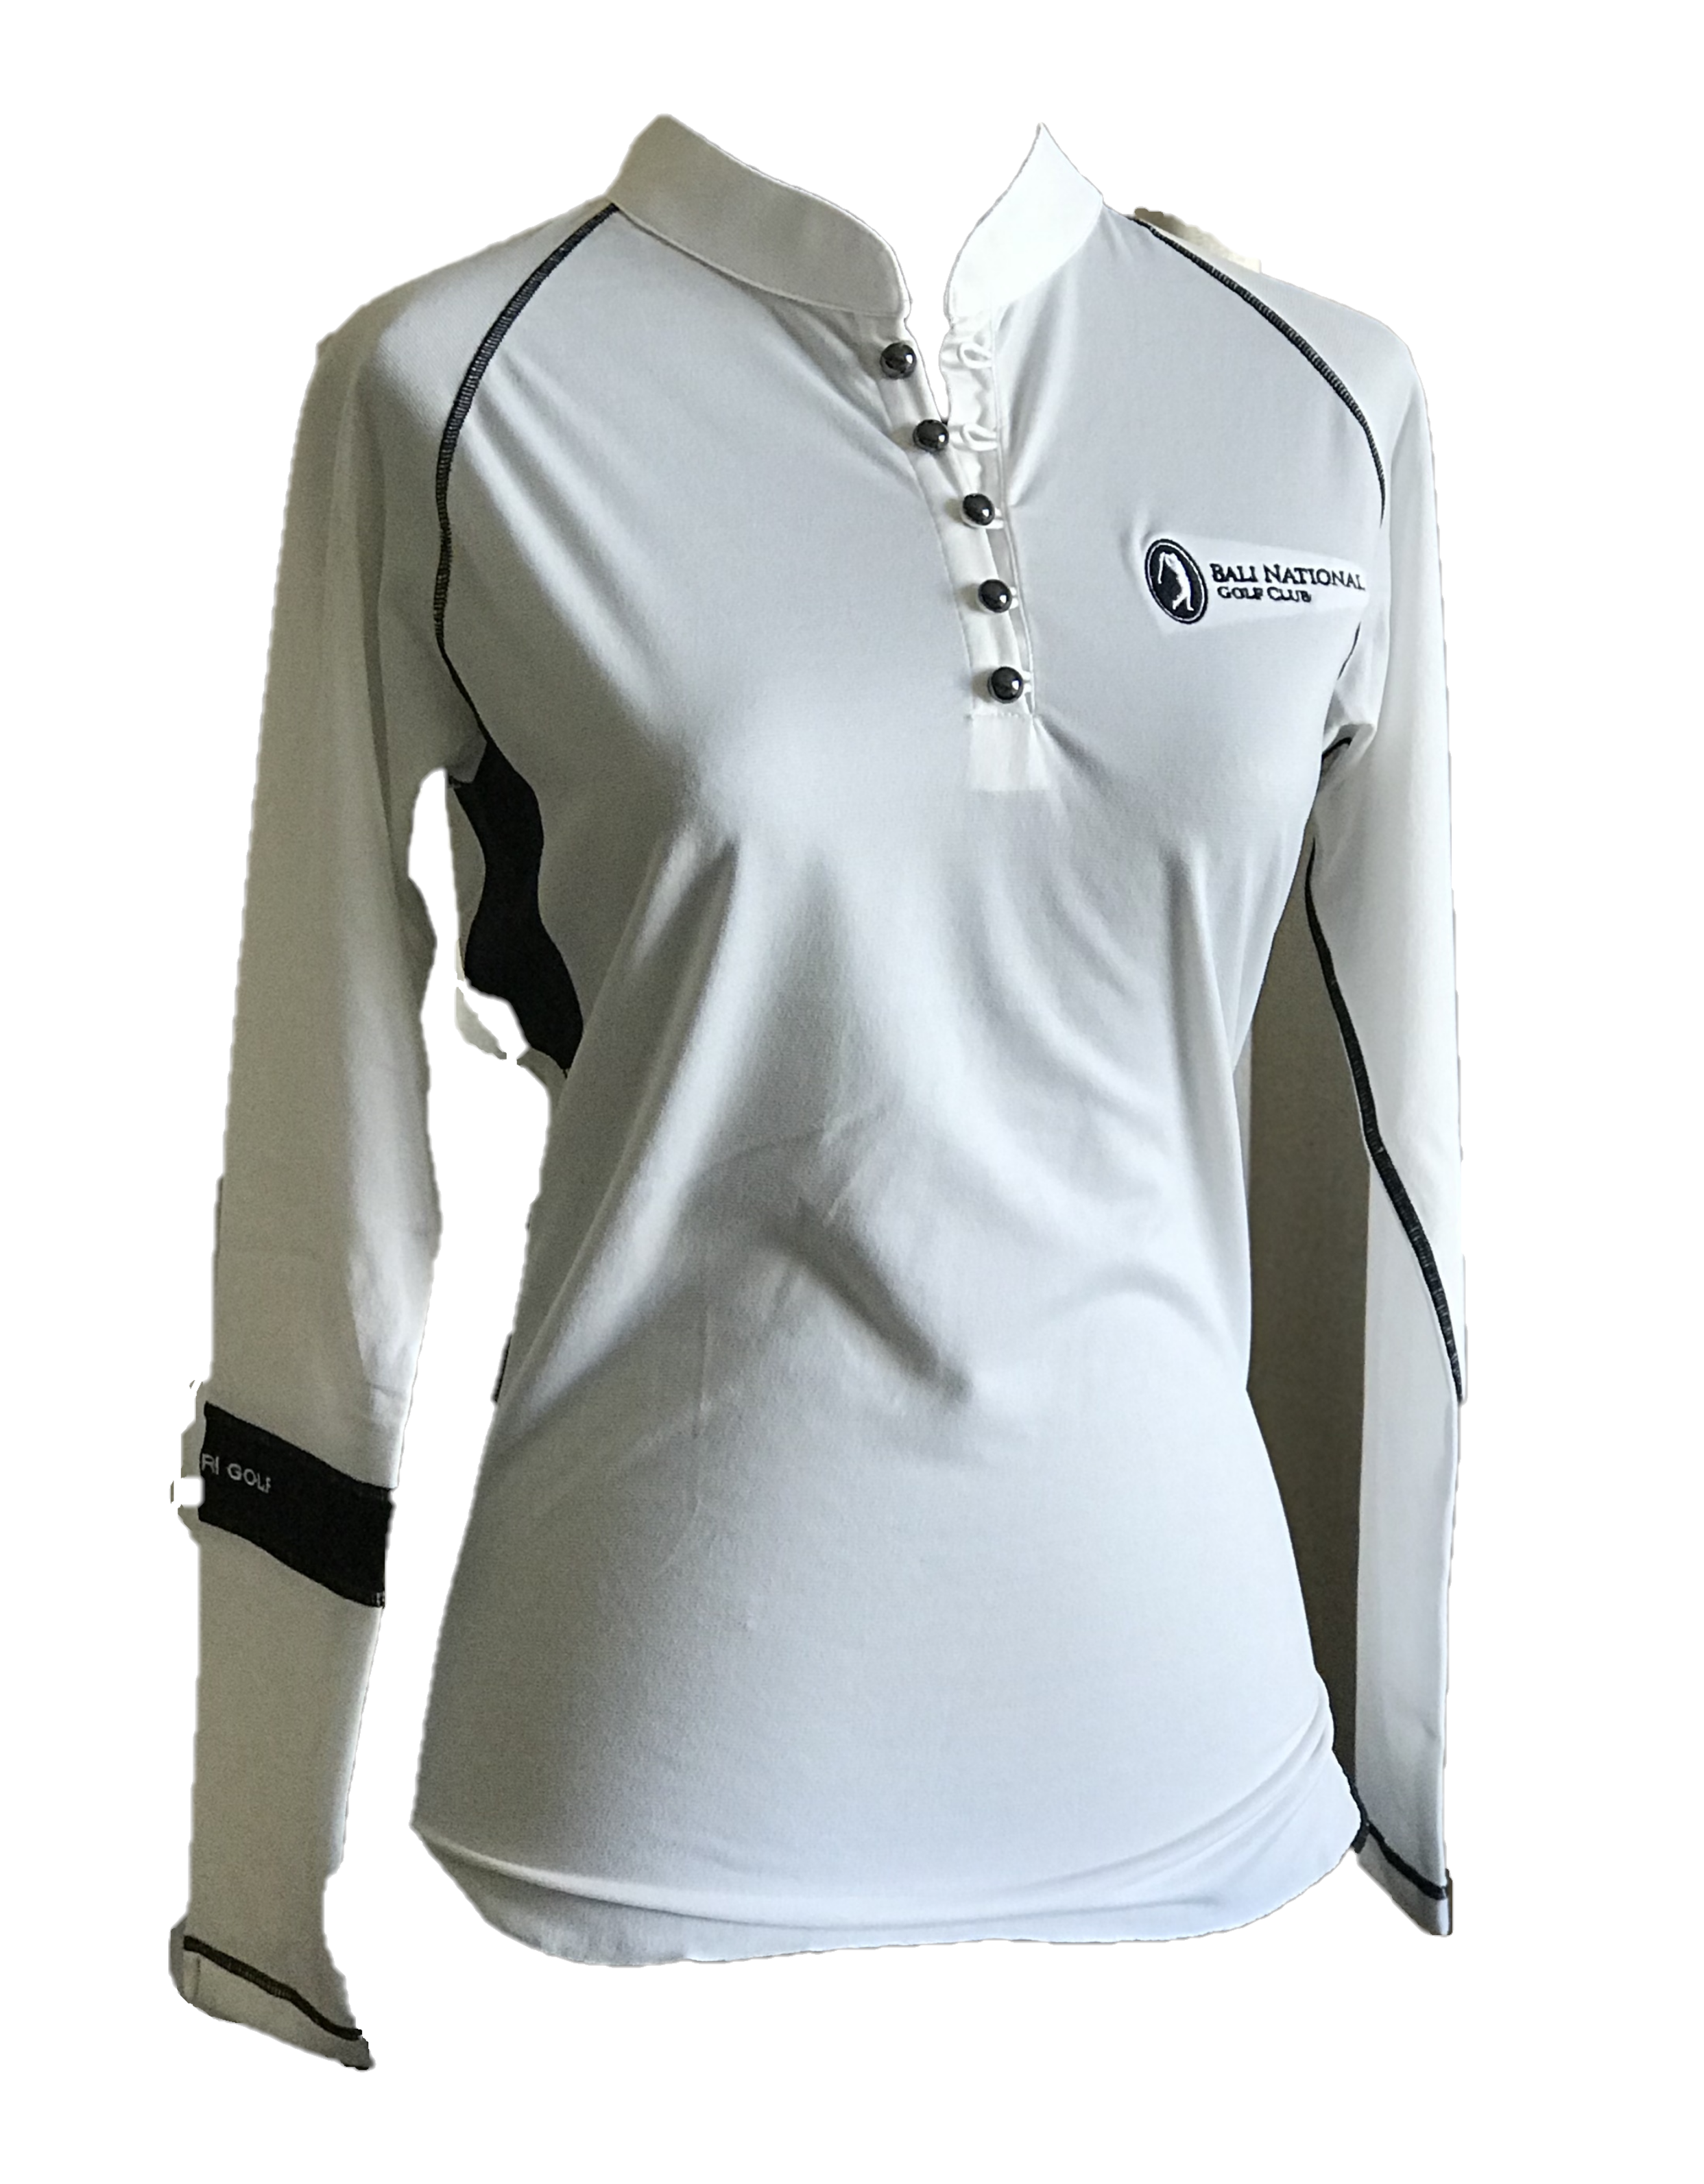 LT-072 || Ladies Top White With Button Mandarin Neck & Black Band One Arm Long Sleeve